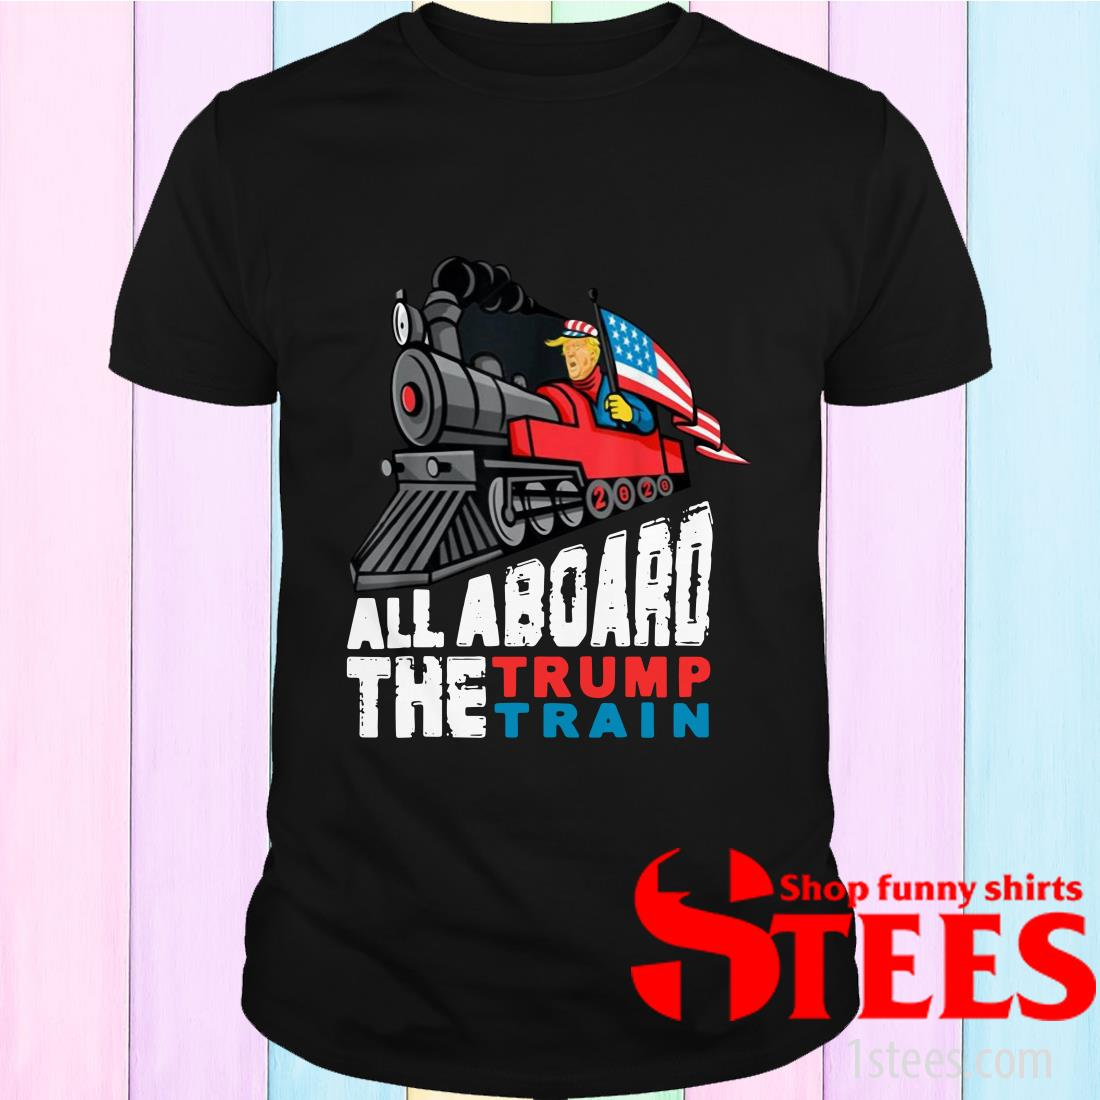 All Aboard the Trump Train 2020 American Flag Shirt